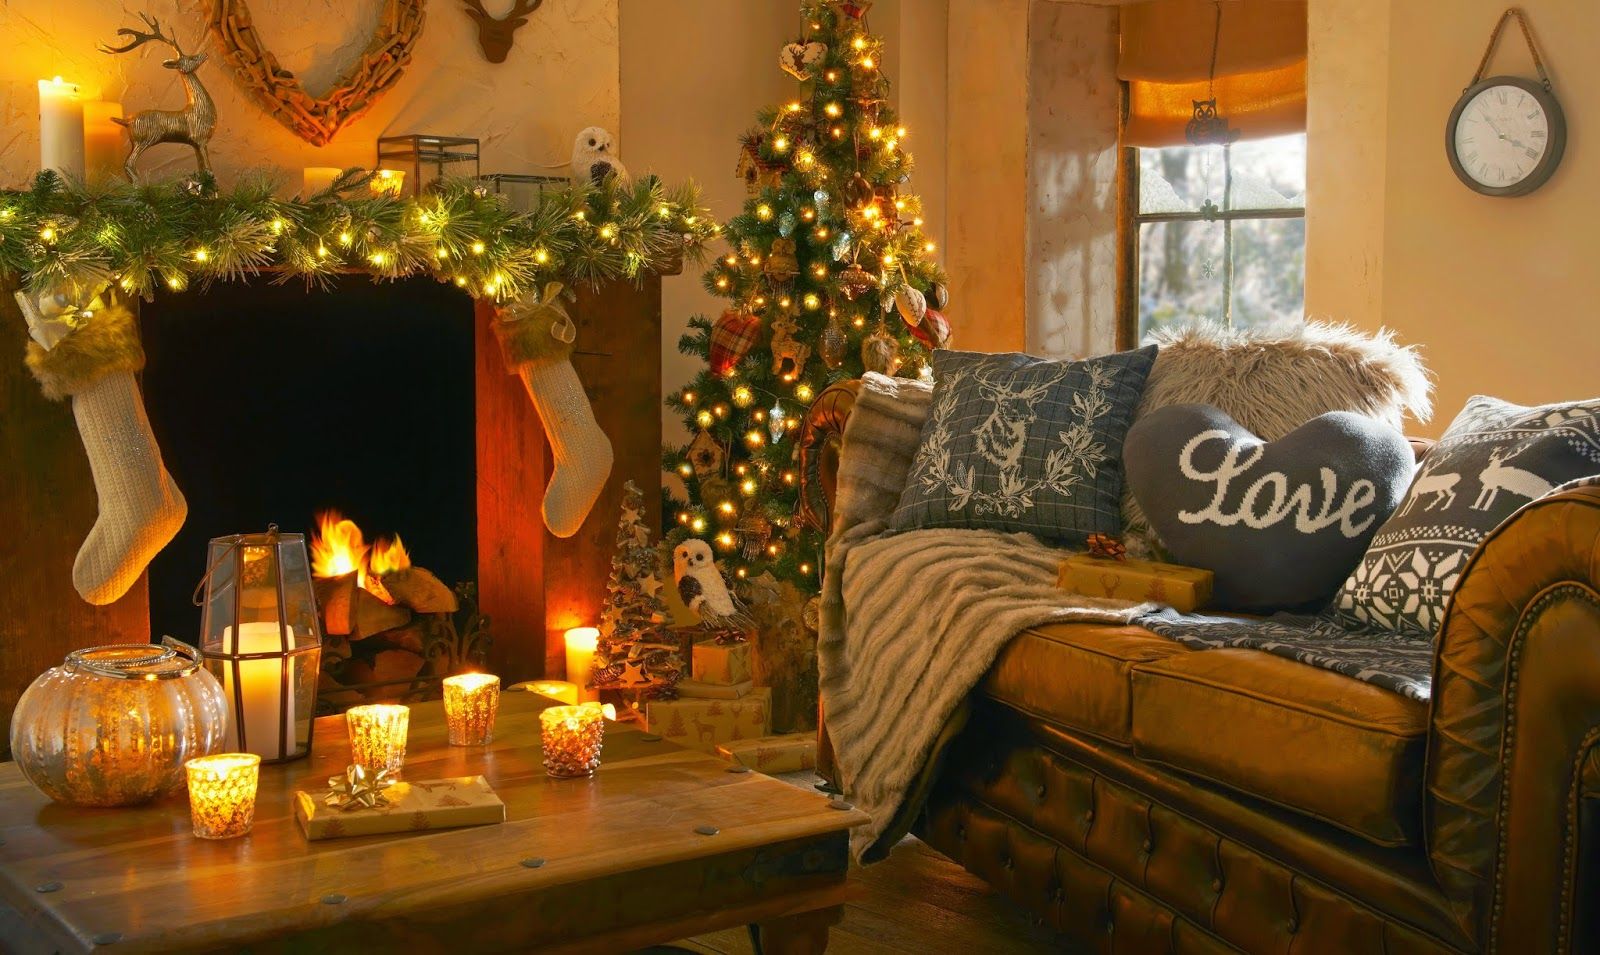 Christmas-table-decoration-with-candles-idea-wallpaper-image-5652x3376.jpg